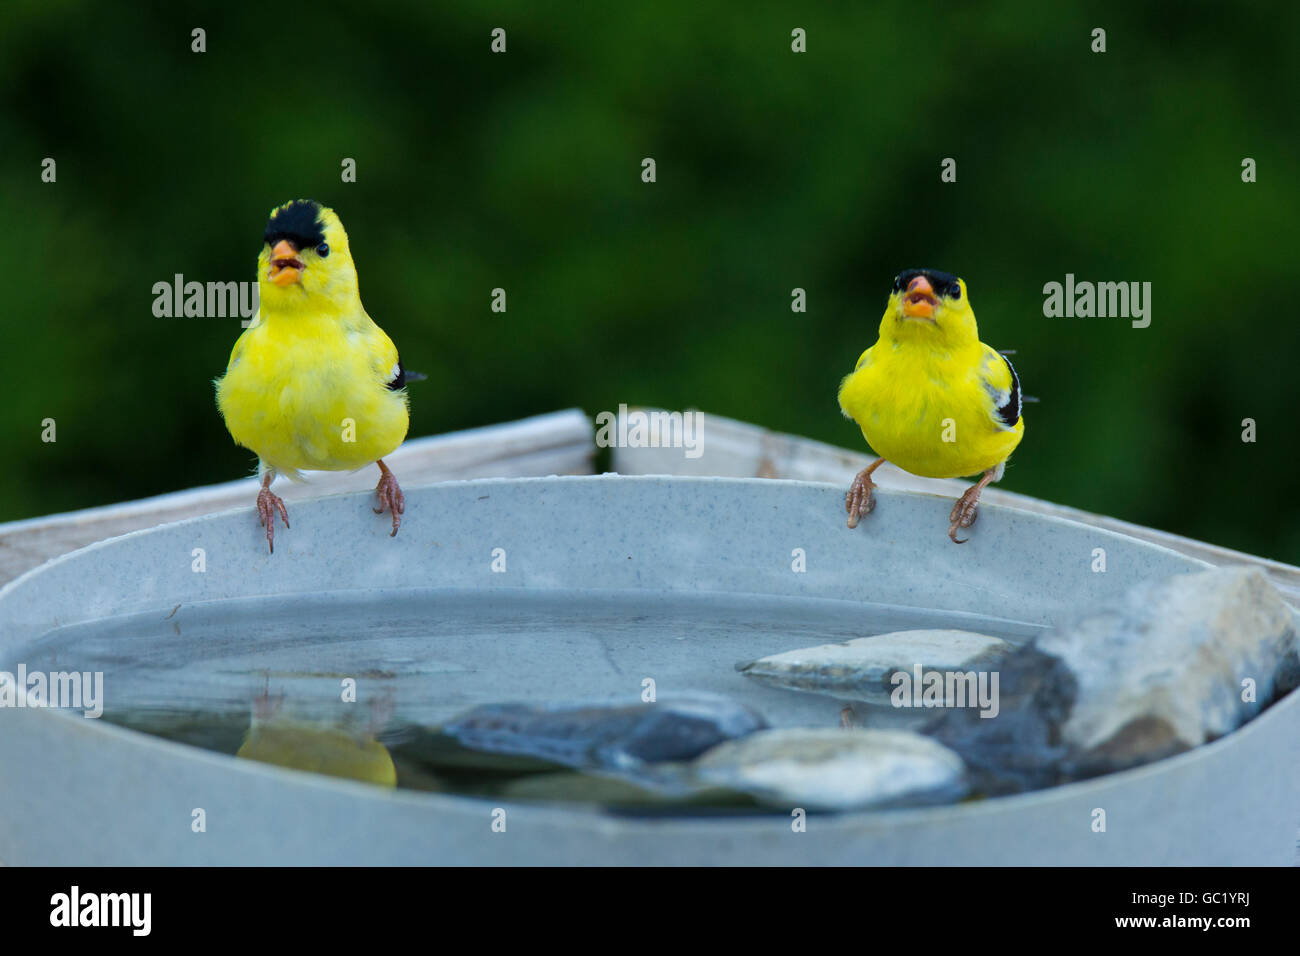 american goldfinch adaptations